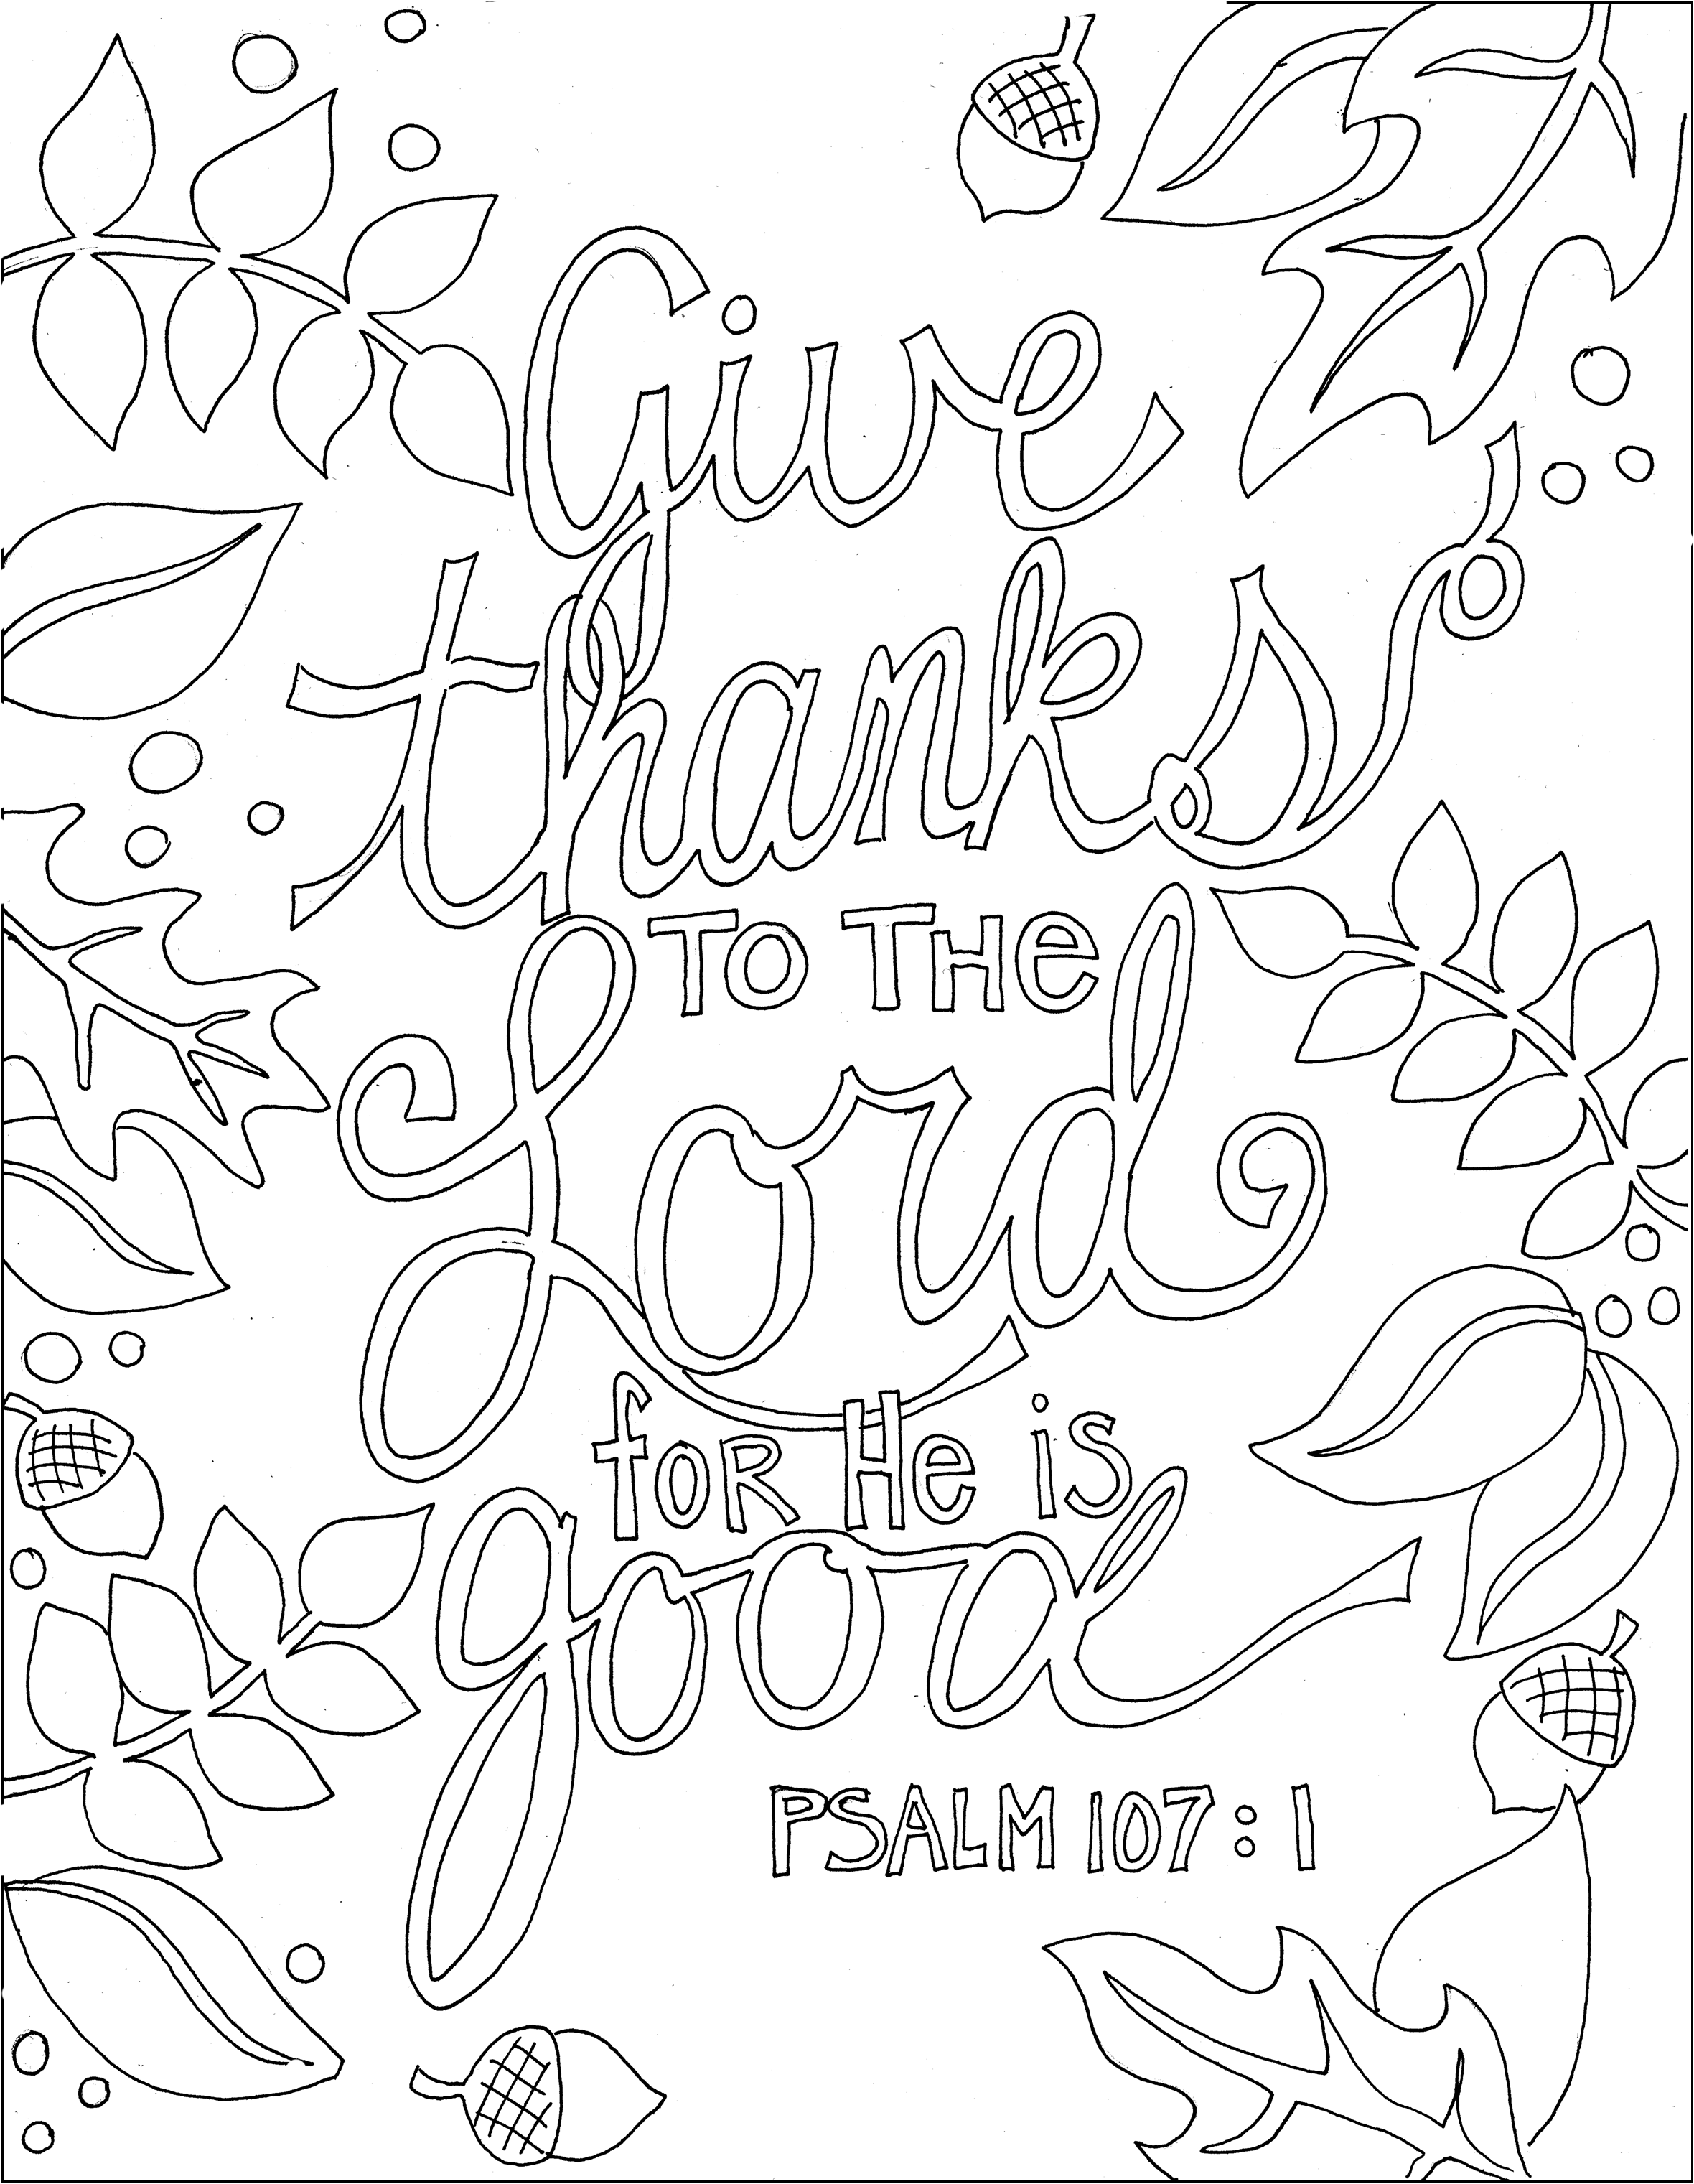 free bible verse coloring pages bible verse coloring pages flame creative children39s verse pages bible coloring free